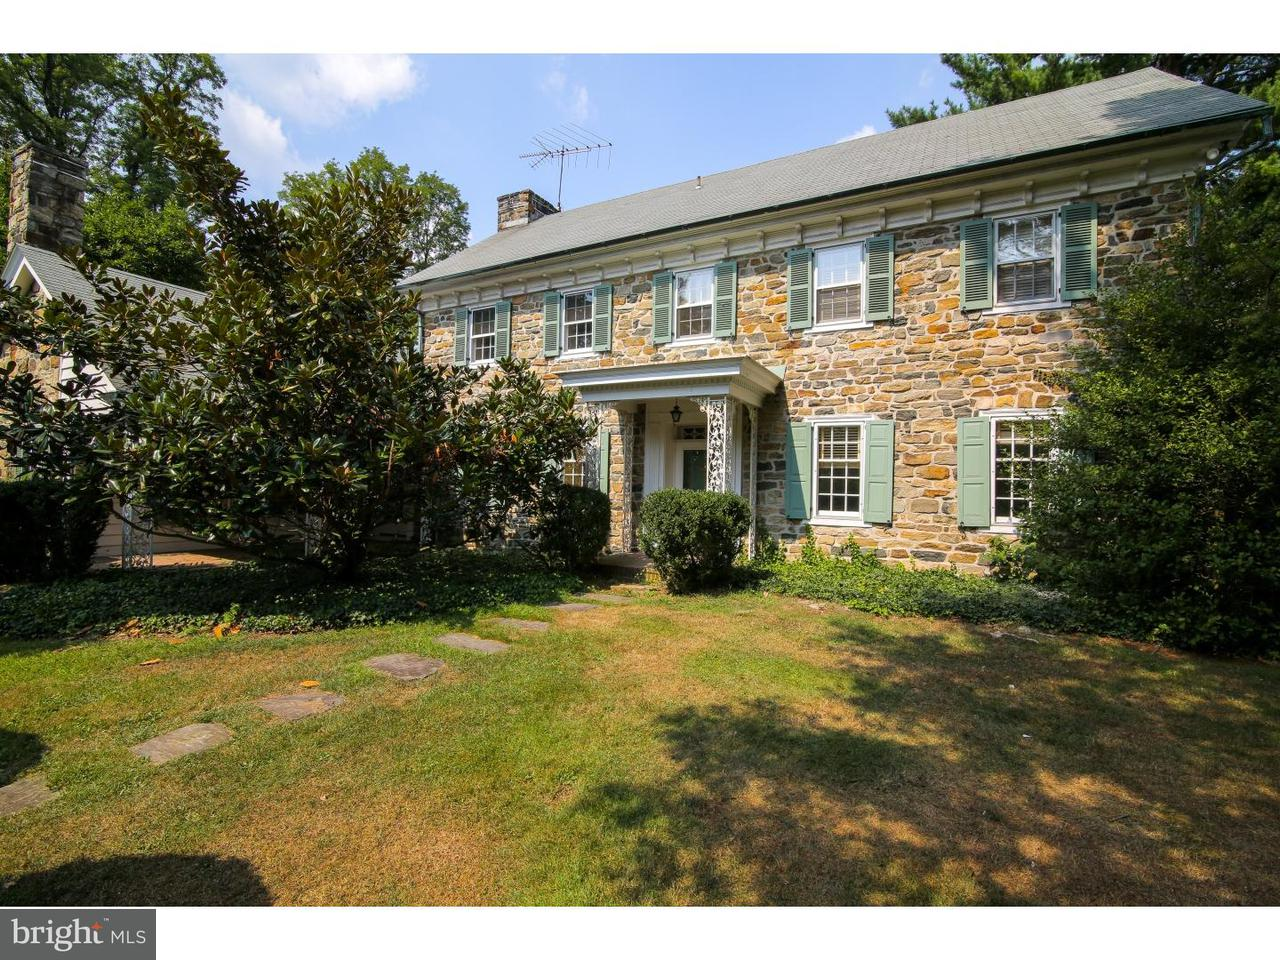 Single Family Home for Sale at 156 MULBERRY HILL Road Barto, Pennsylvania 19504 United States